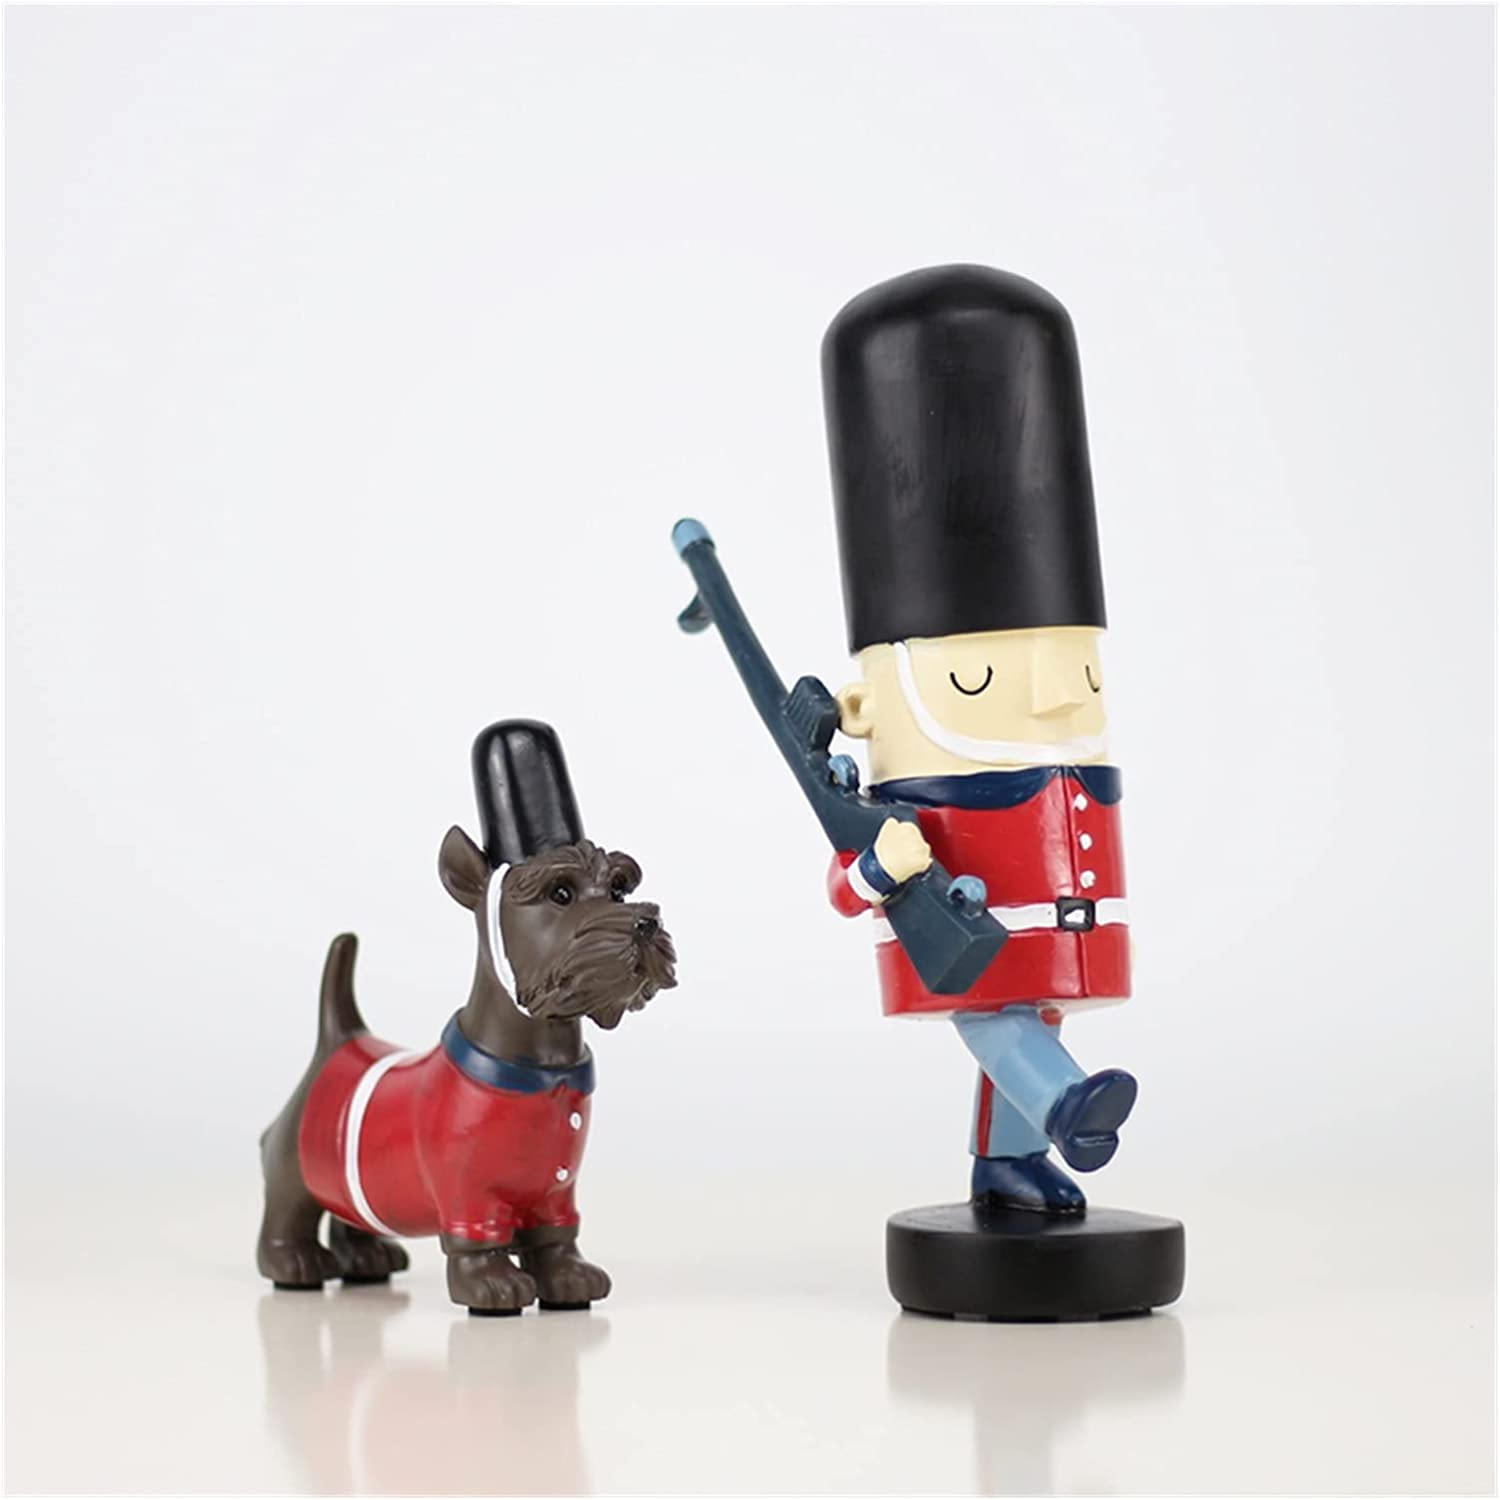 MINGMIN-DZ Mural Decoration Figurines Dog Limited time for free shipping Ornamen Police Patrol Quality inspection